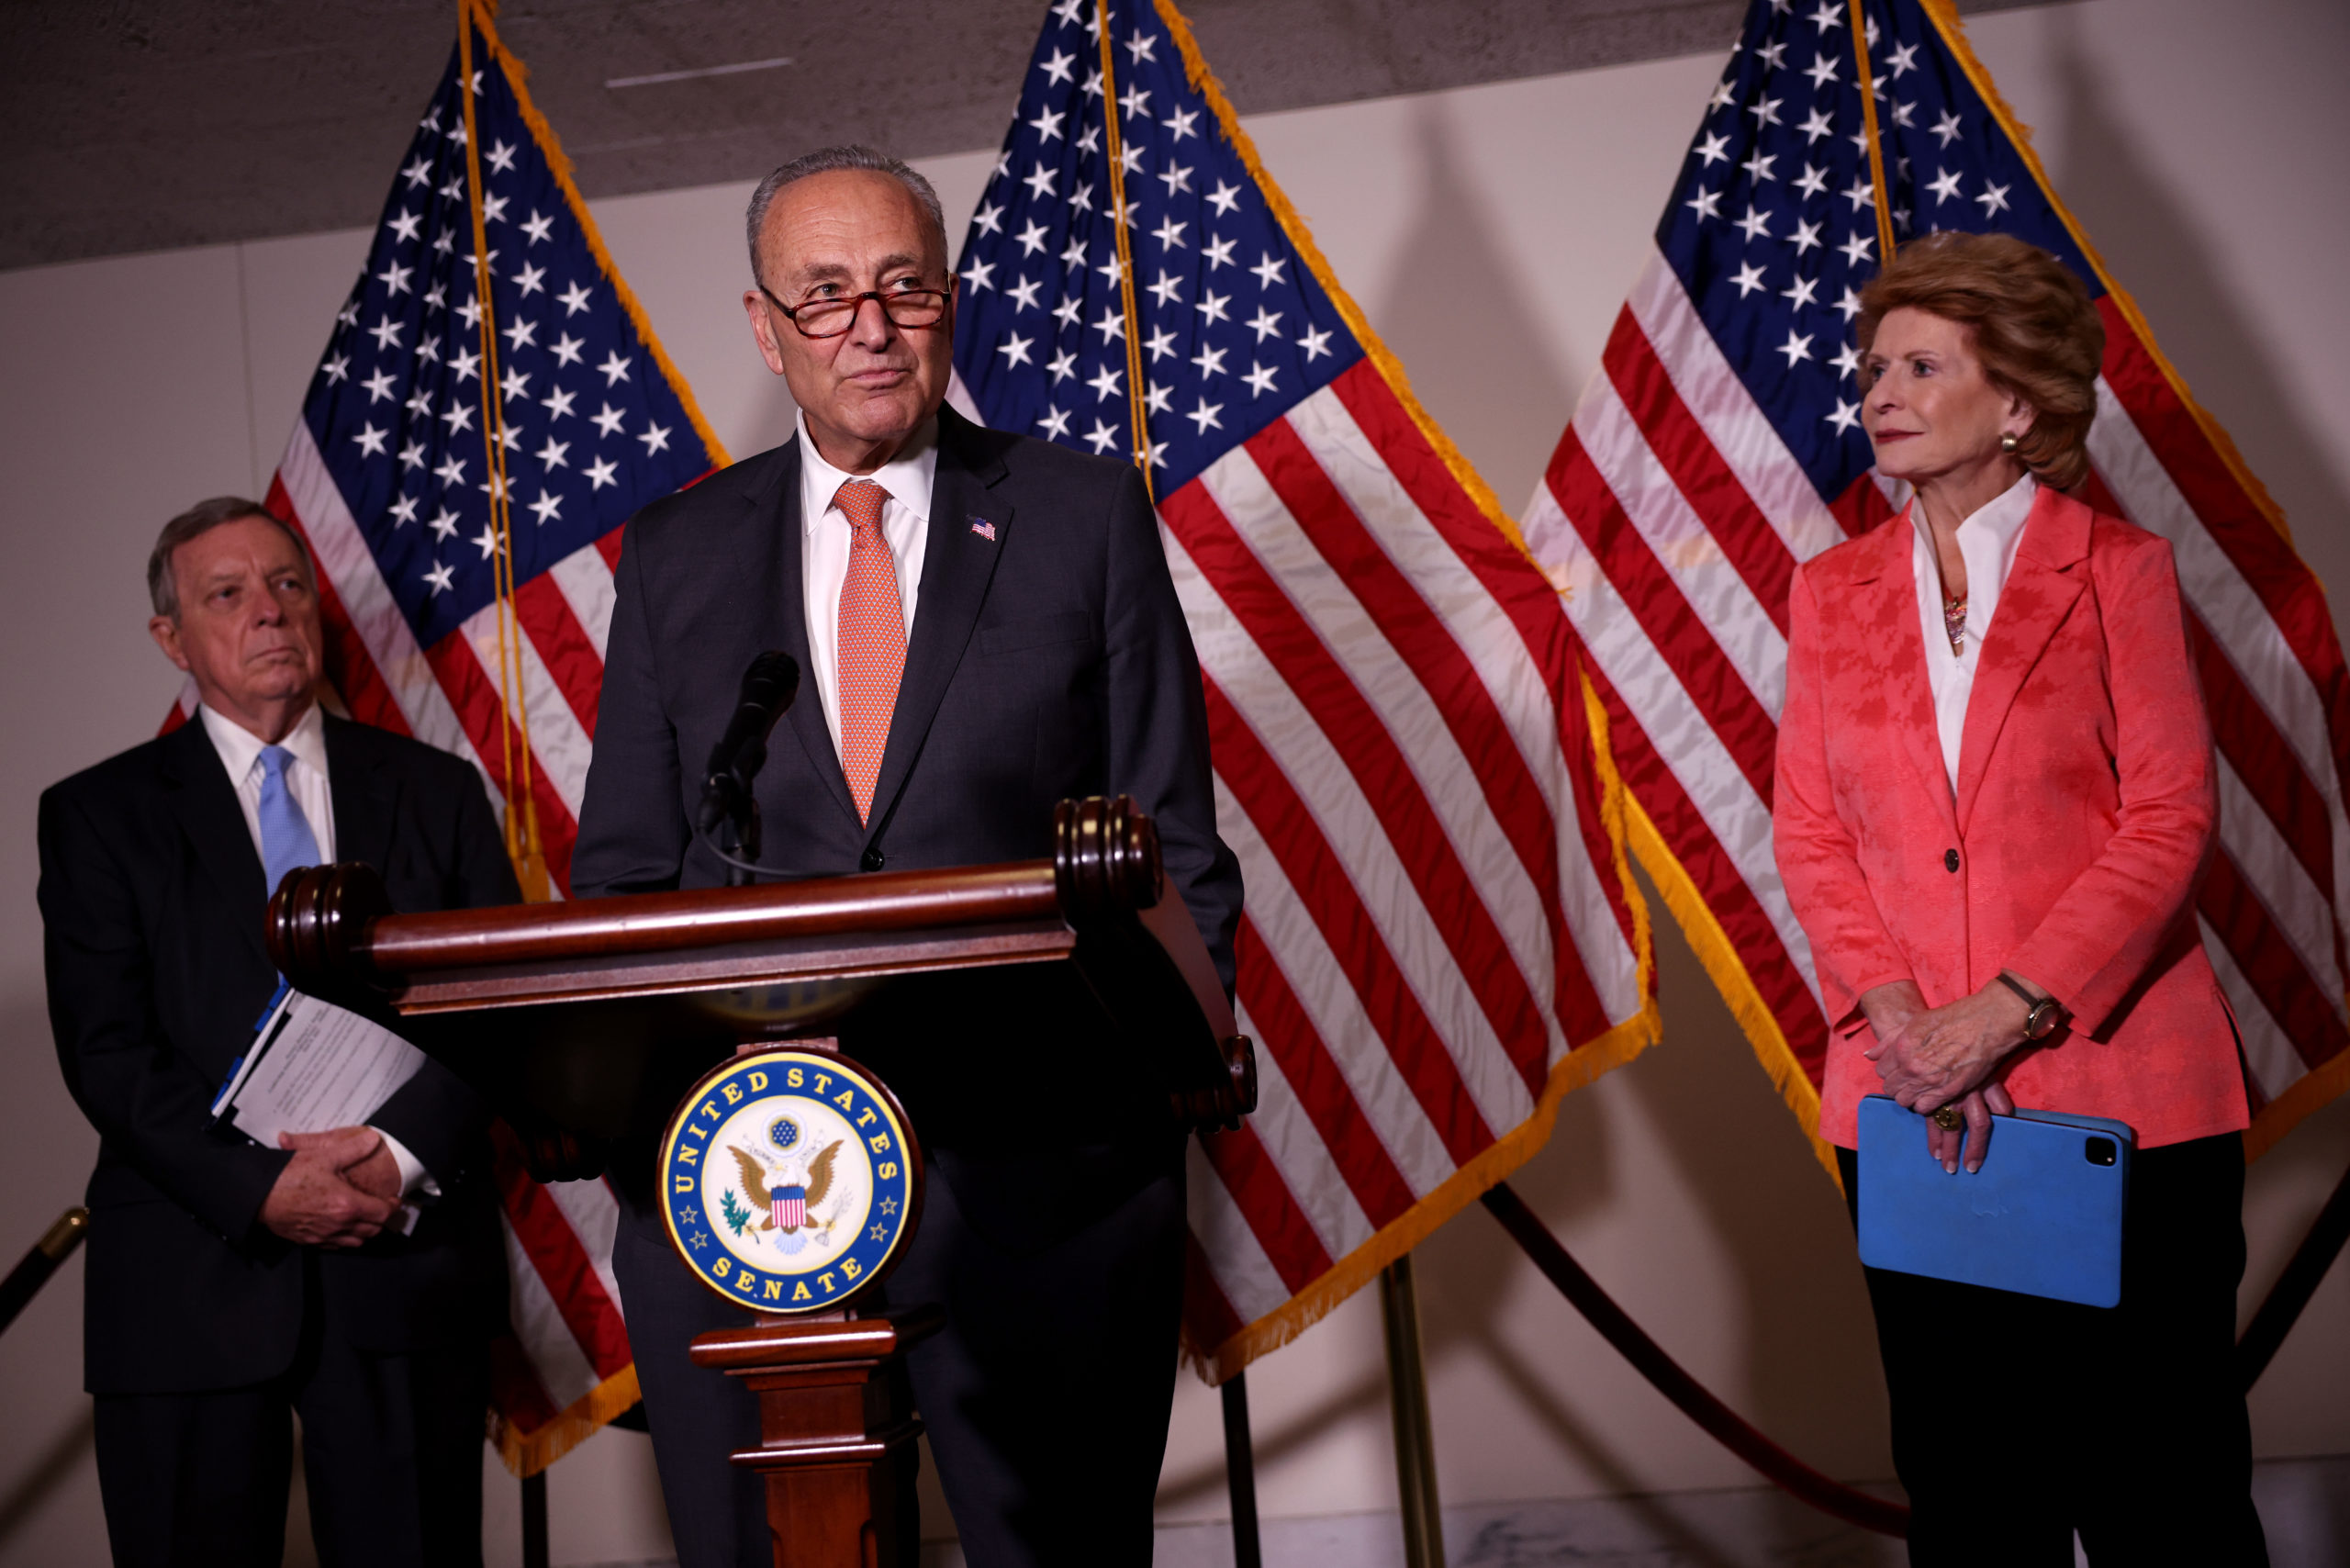 WASHINGTON, DC - JUNE 08: Senate Majority Leader Charles Schumer (D-NY) speaks alongside Sen. Richard Durbin (D-IL) (L) and Sen. Debbie Stabenow (D-MI) (R) at a press conference following a Senate Democratic luncheon on Capitol Hill on June 08, 2021 in Washington, DC. Schumer spoke on the equal pay, infrastructure and Democratic judicial nominees. (Photo by Kevin Dietsch/Getty Images)